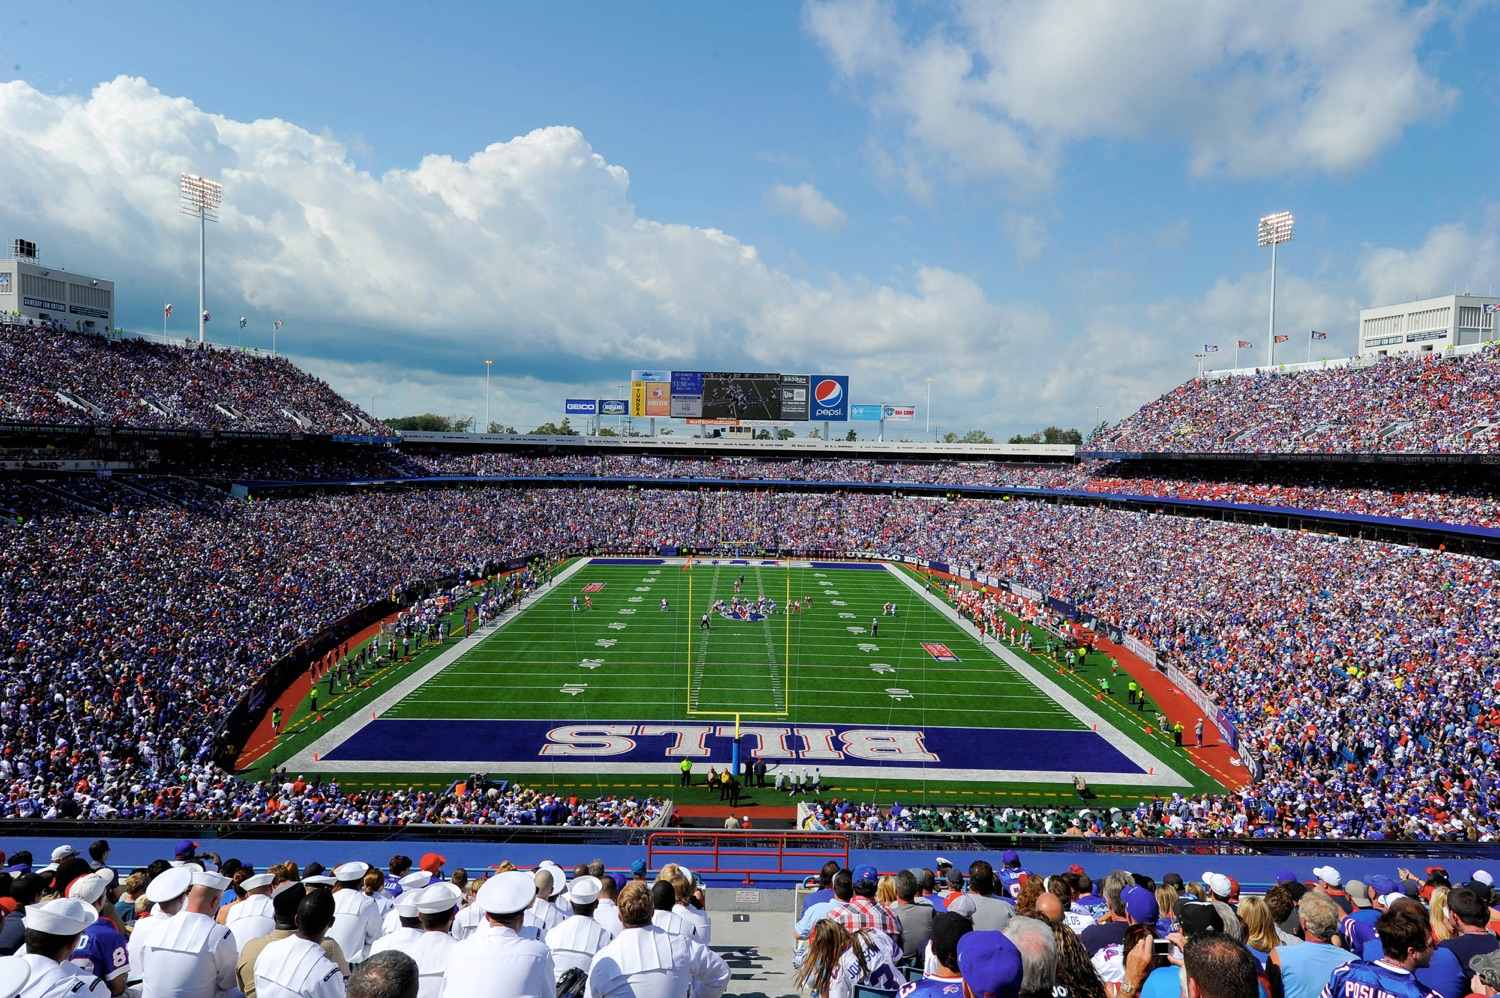 Buffalo Bills Achieve 100% Incident Reporting via 24/7 Software From 2015 to Present